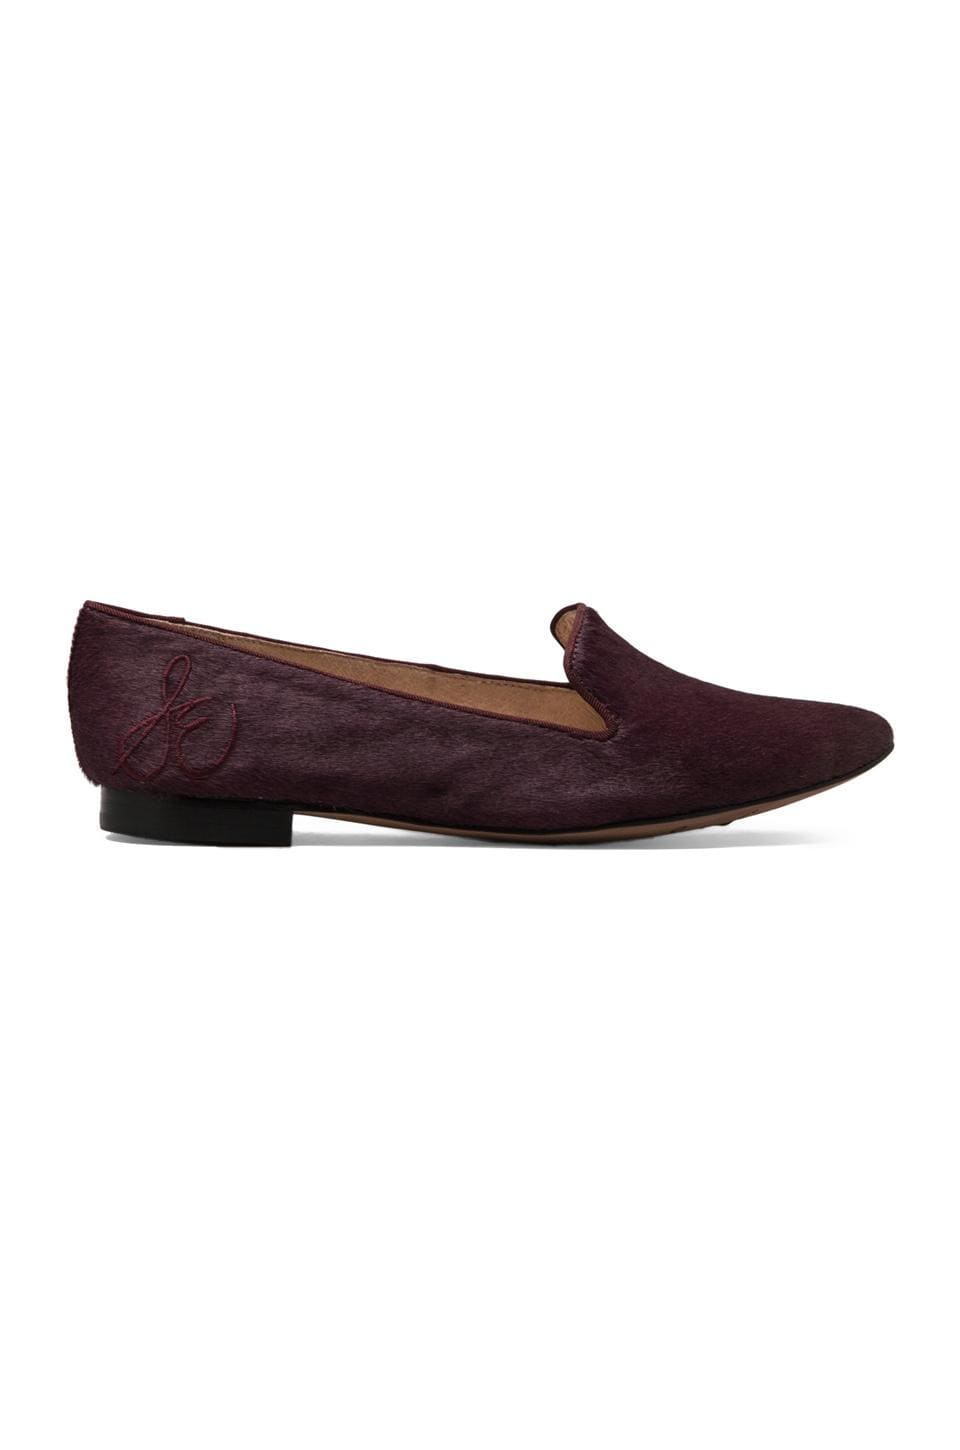 Sam Edelman Alvin Loafer with Calf Hair in British Burgundy